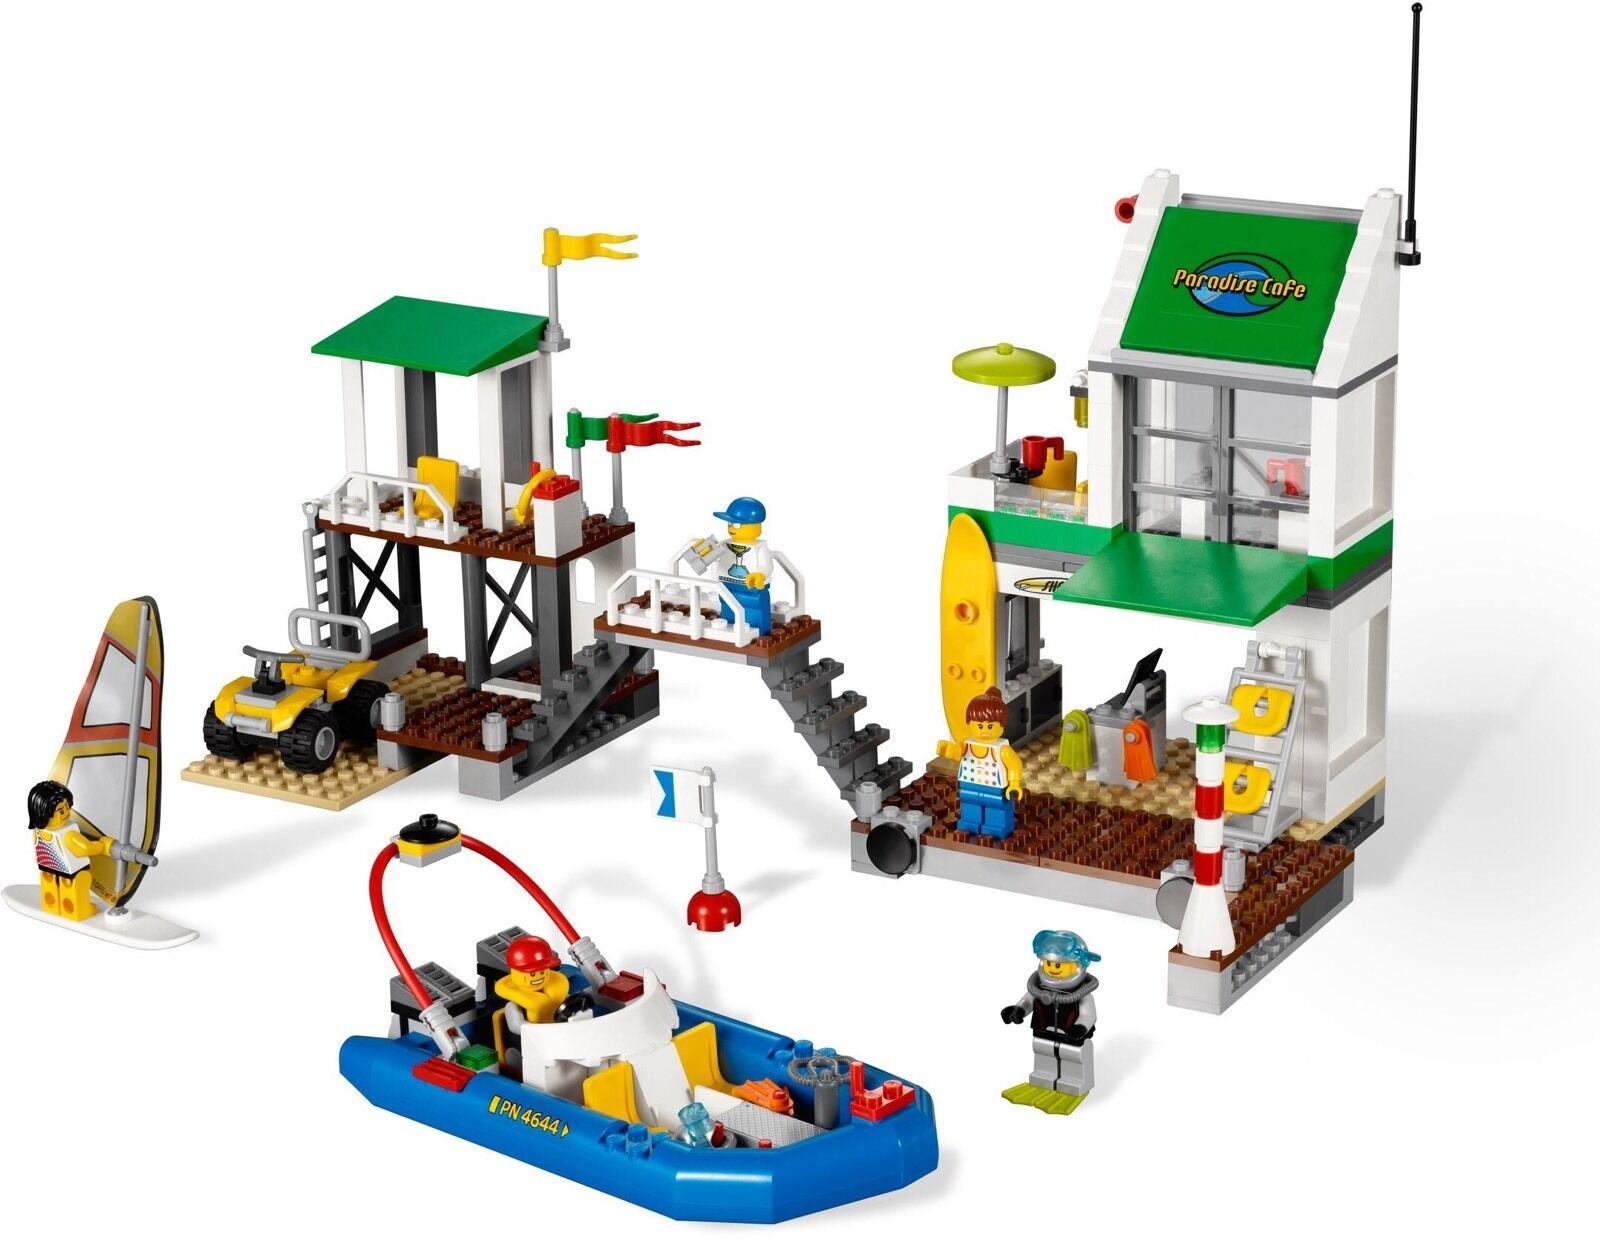 Lego 4644 Marina (Released 2011)